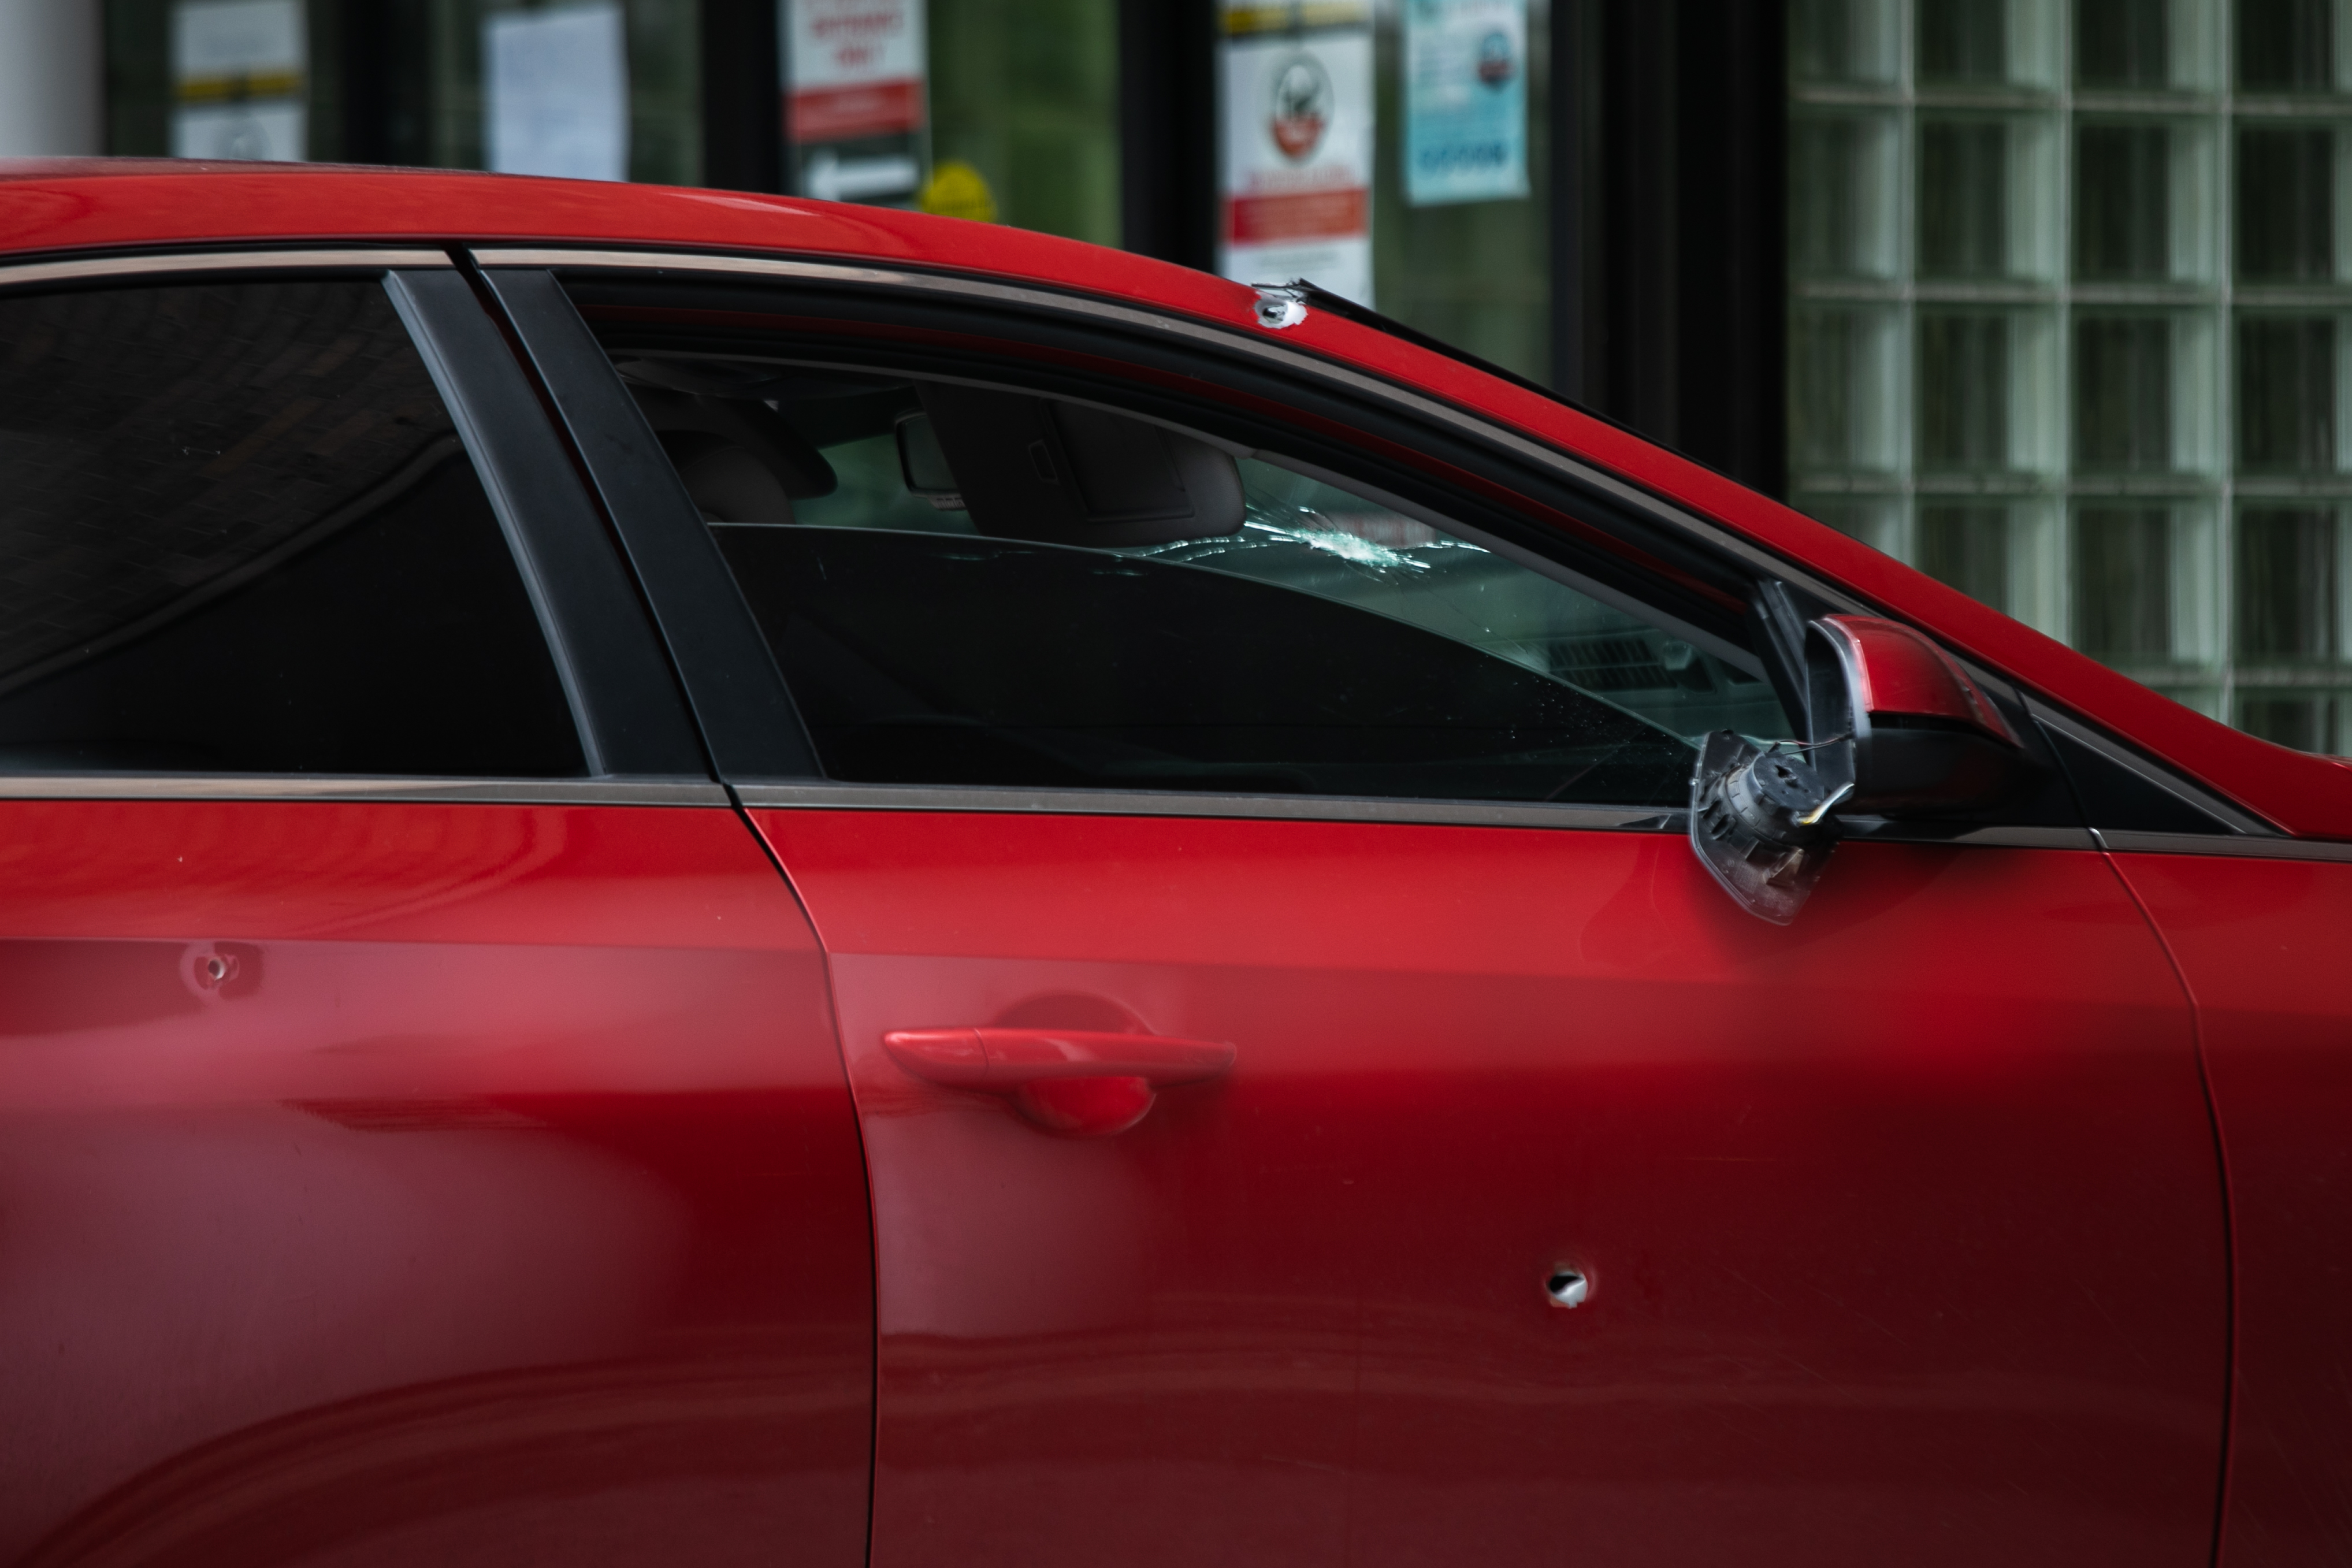 A car with bullet holes sits outside St. Bernard Hospital where a 1-year-old boy died after being shot in chest while he was riding in the car with his mother as they drove home from a laundromat Saturday afternoon in Englewood.